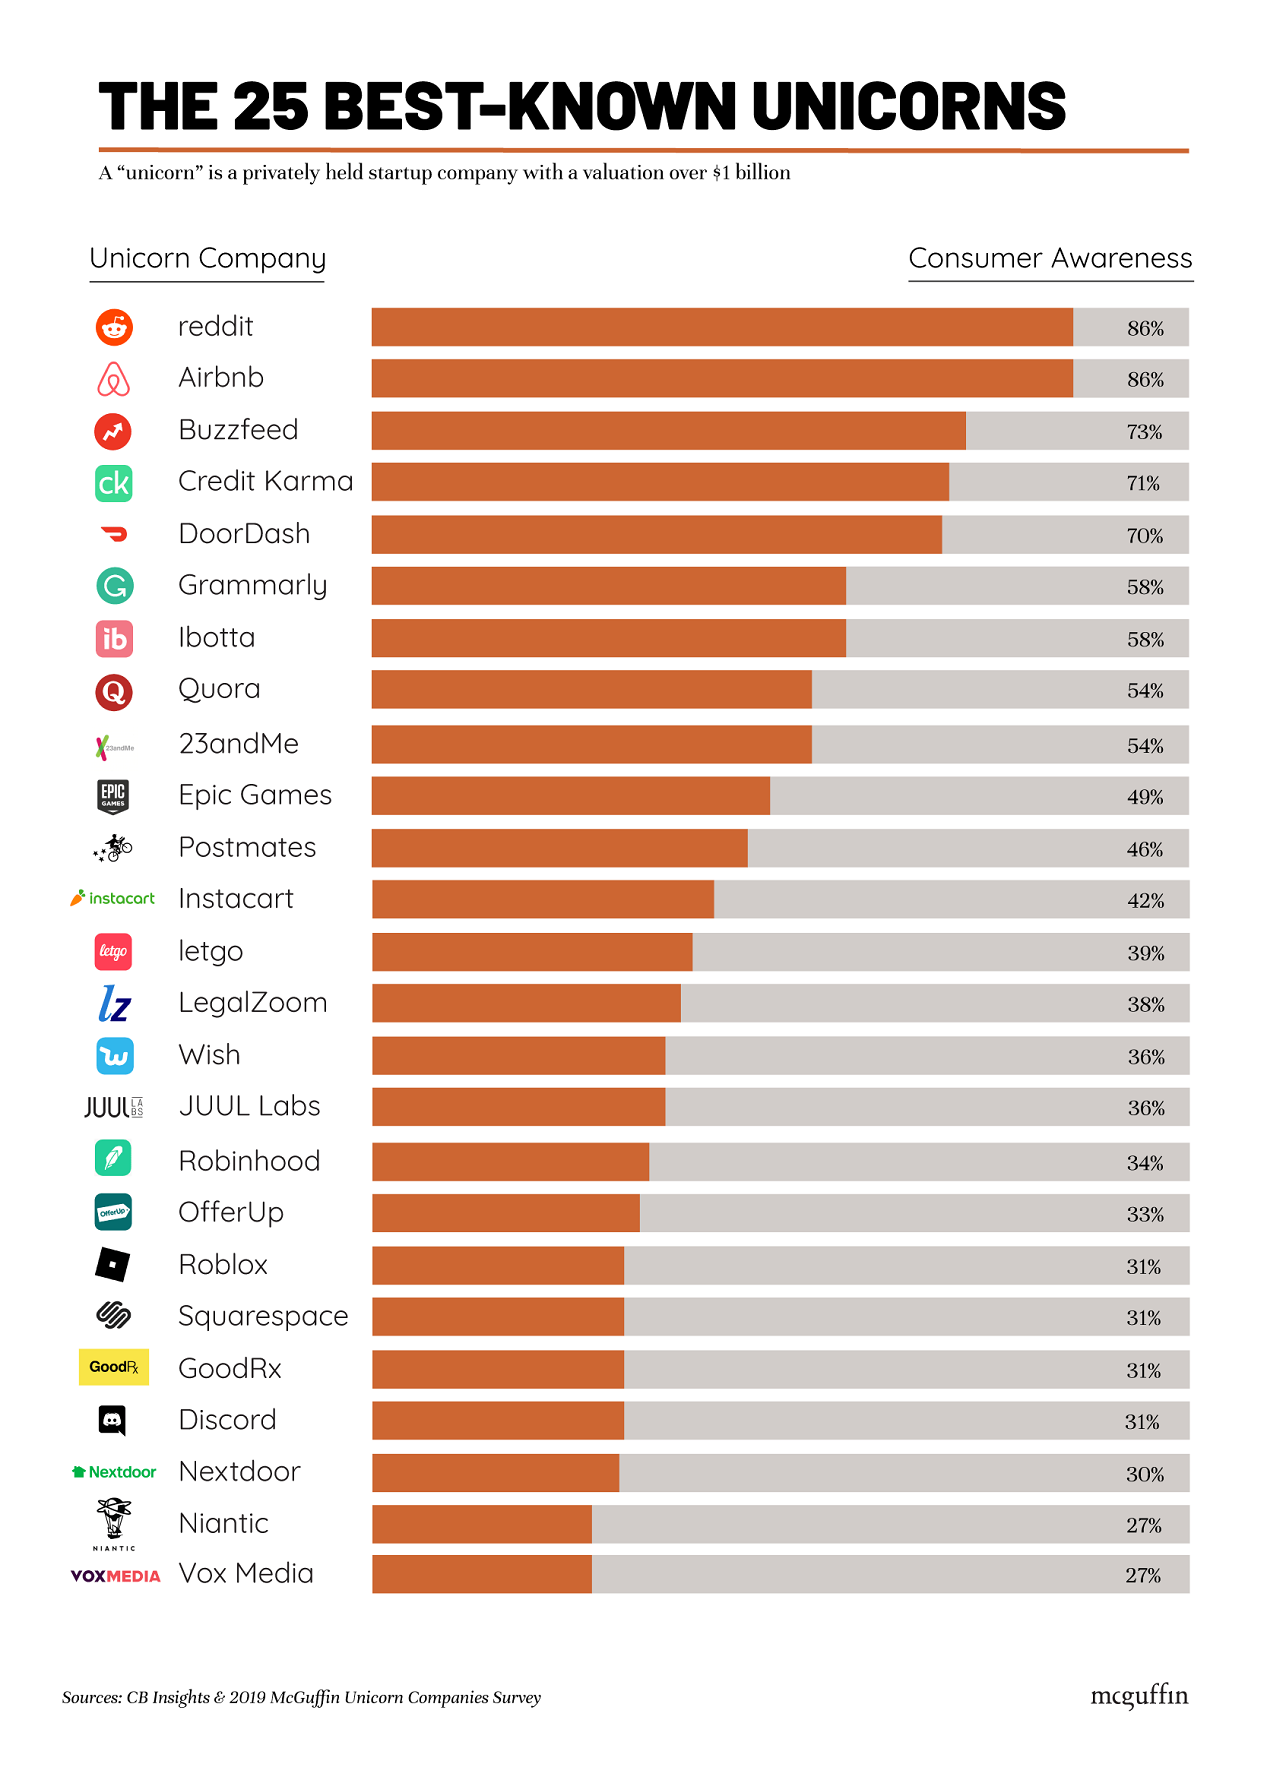 New study reveals the 25 most popular unicorn startups #infographic